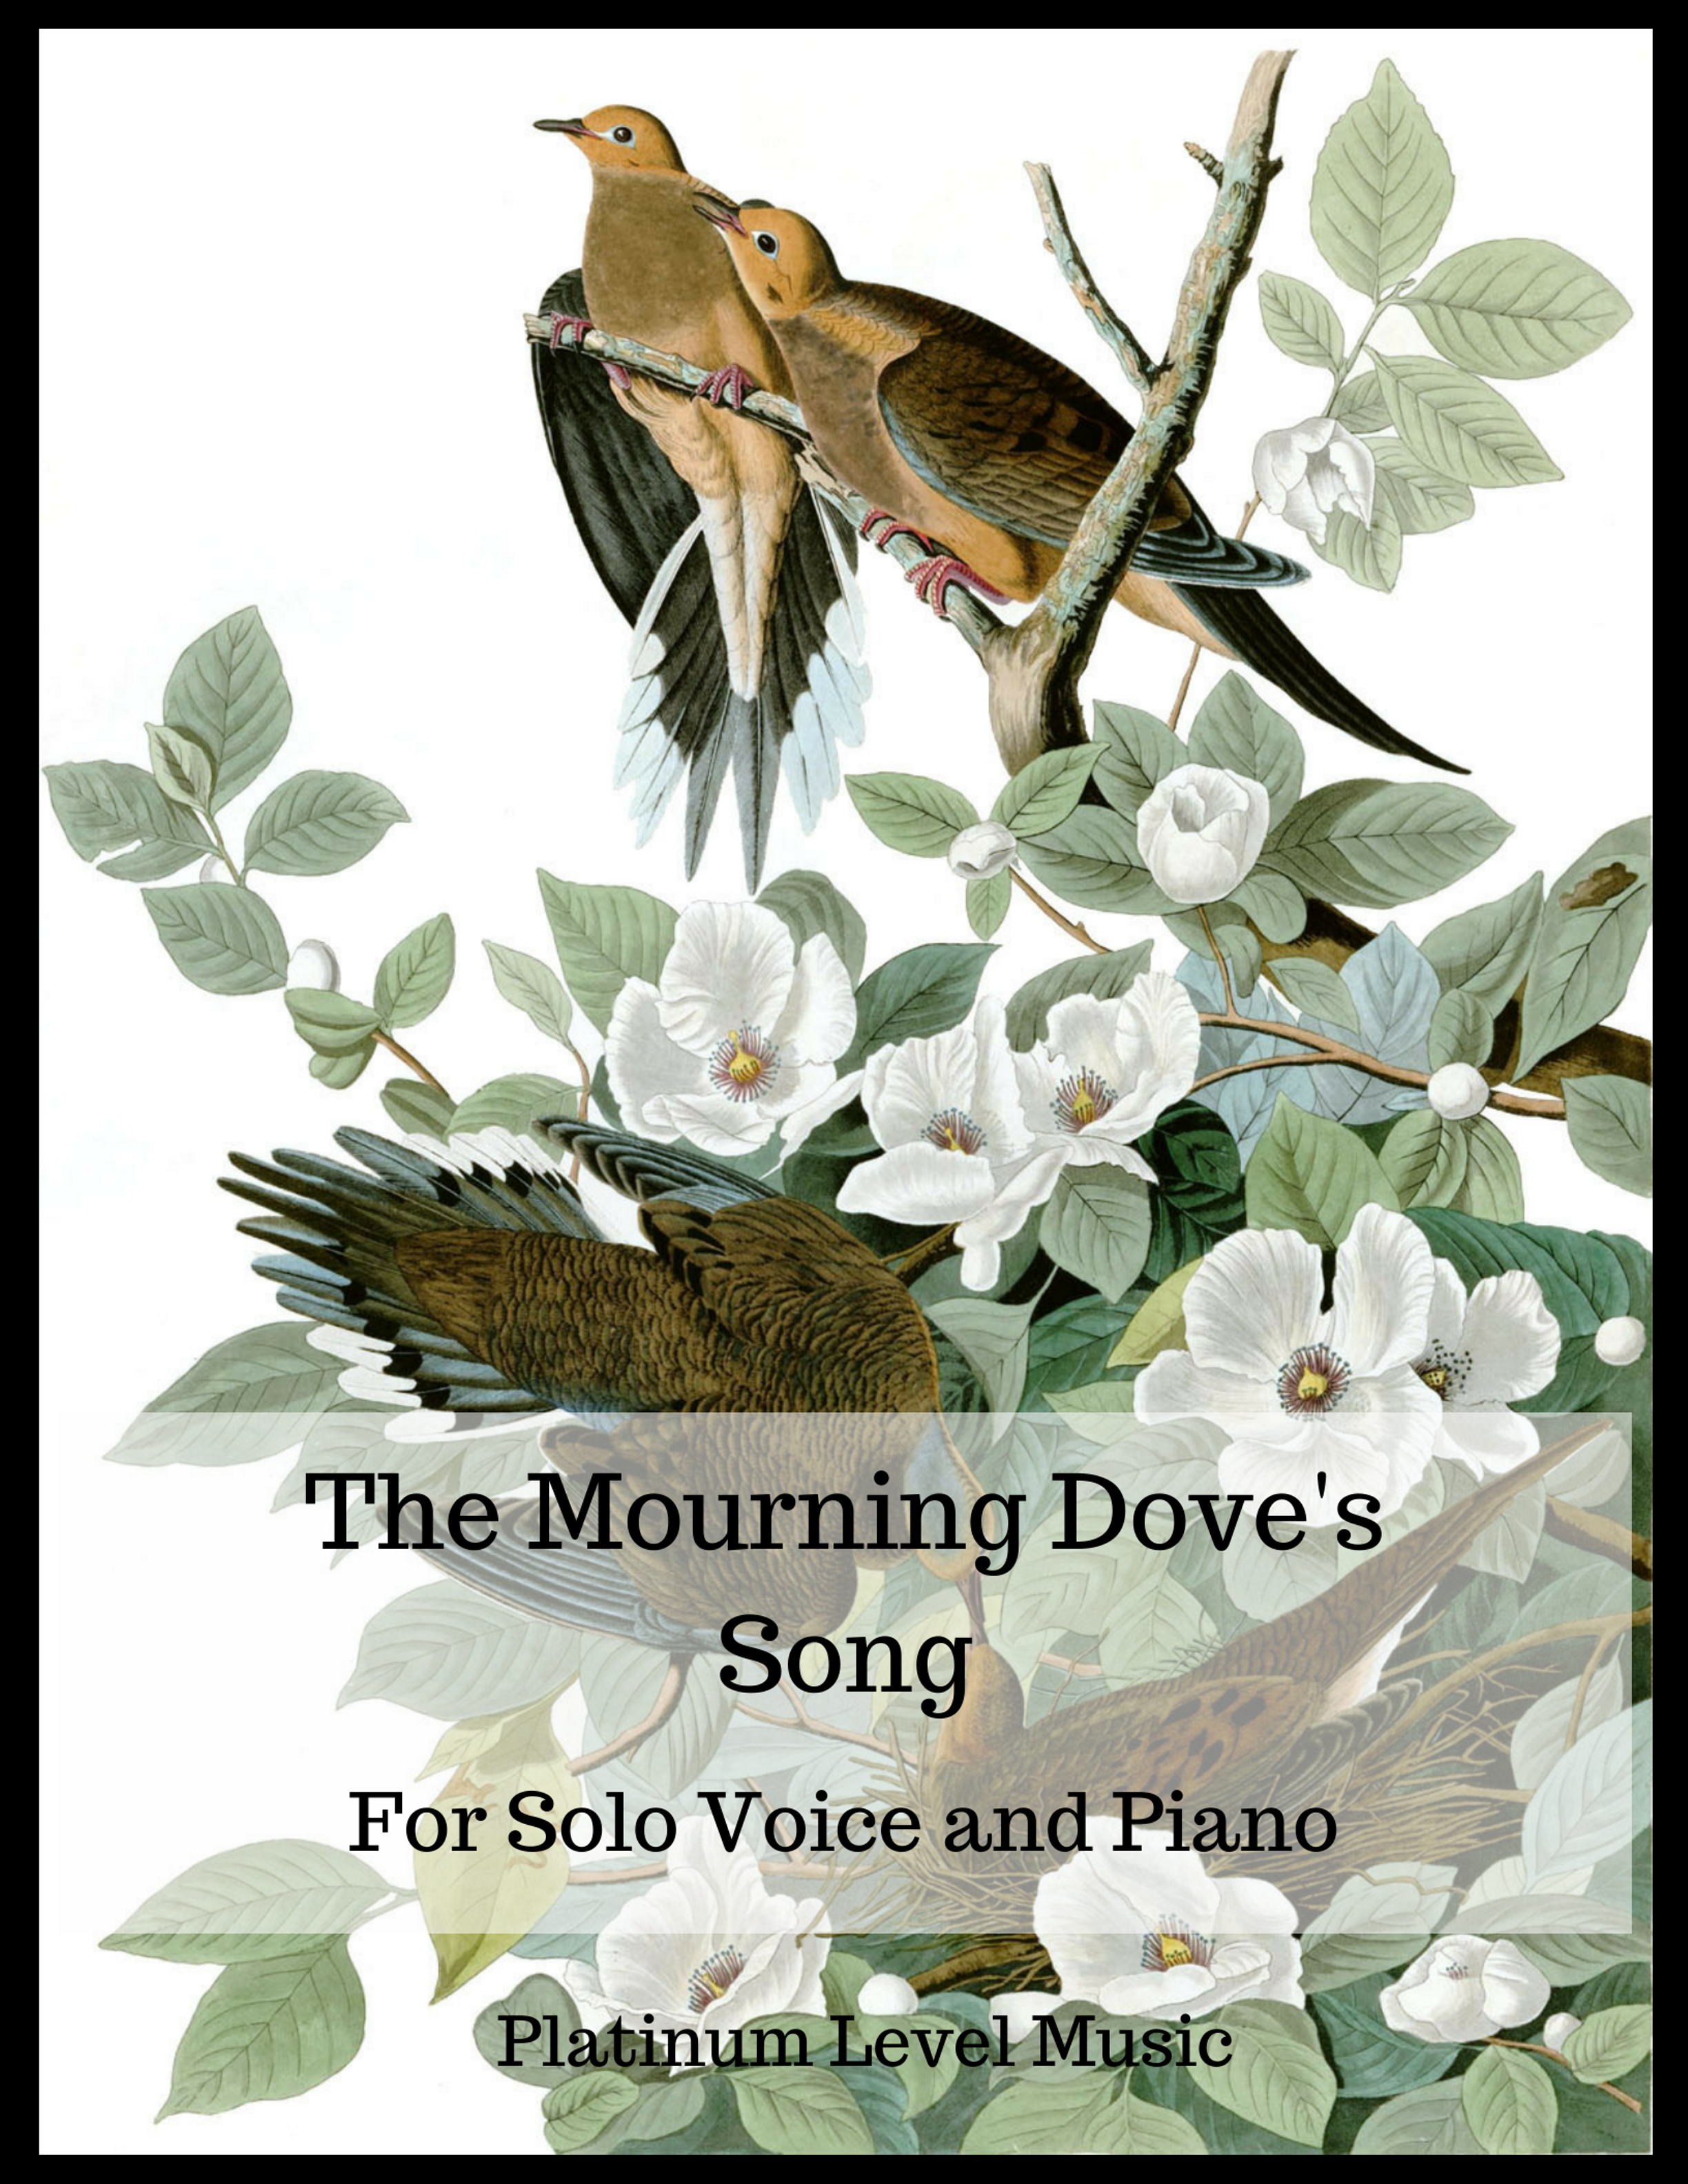 The Mourning Dove's Song